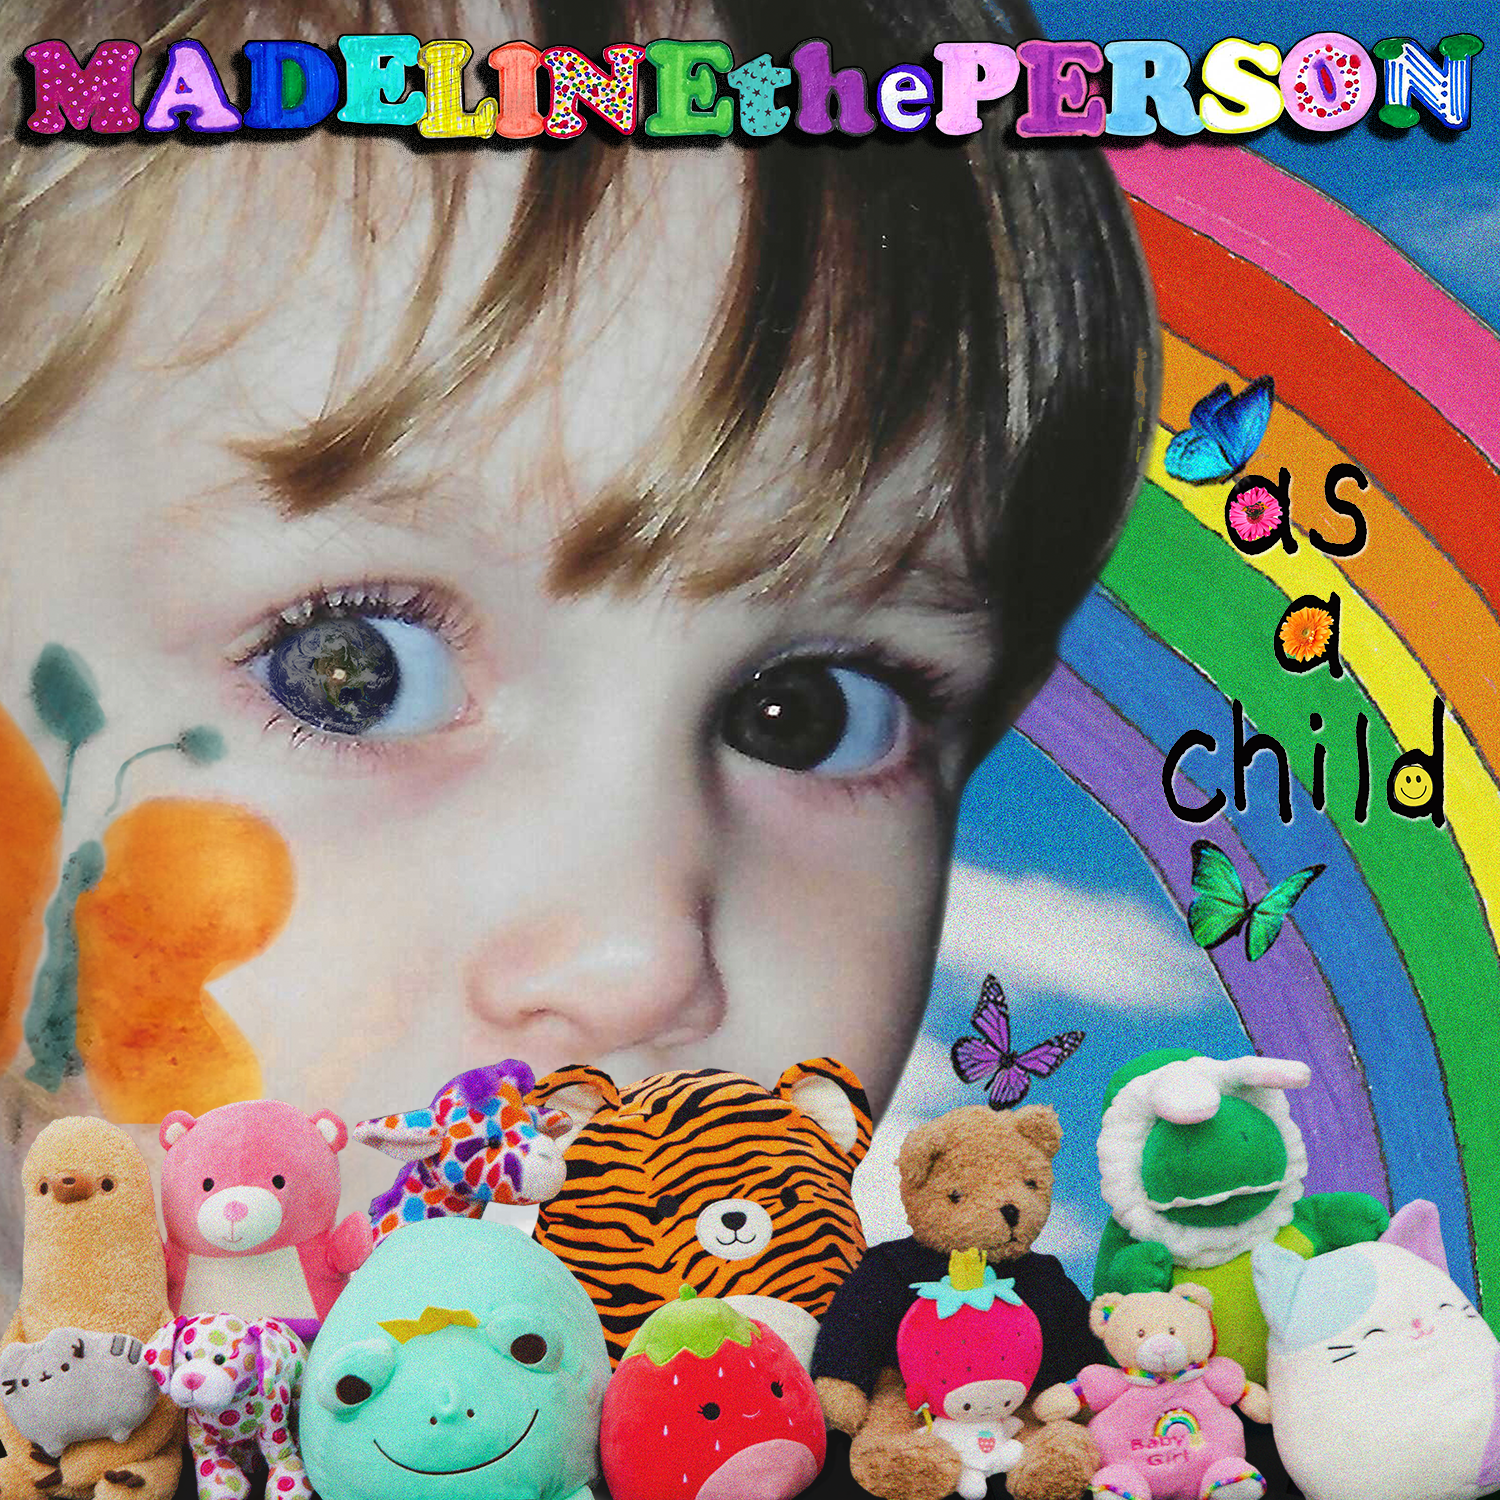 As A Child cover art of Madeline The Person by Warner Records for use by 360 Magazine